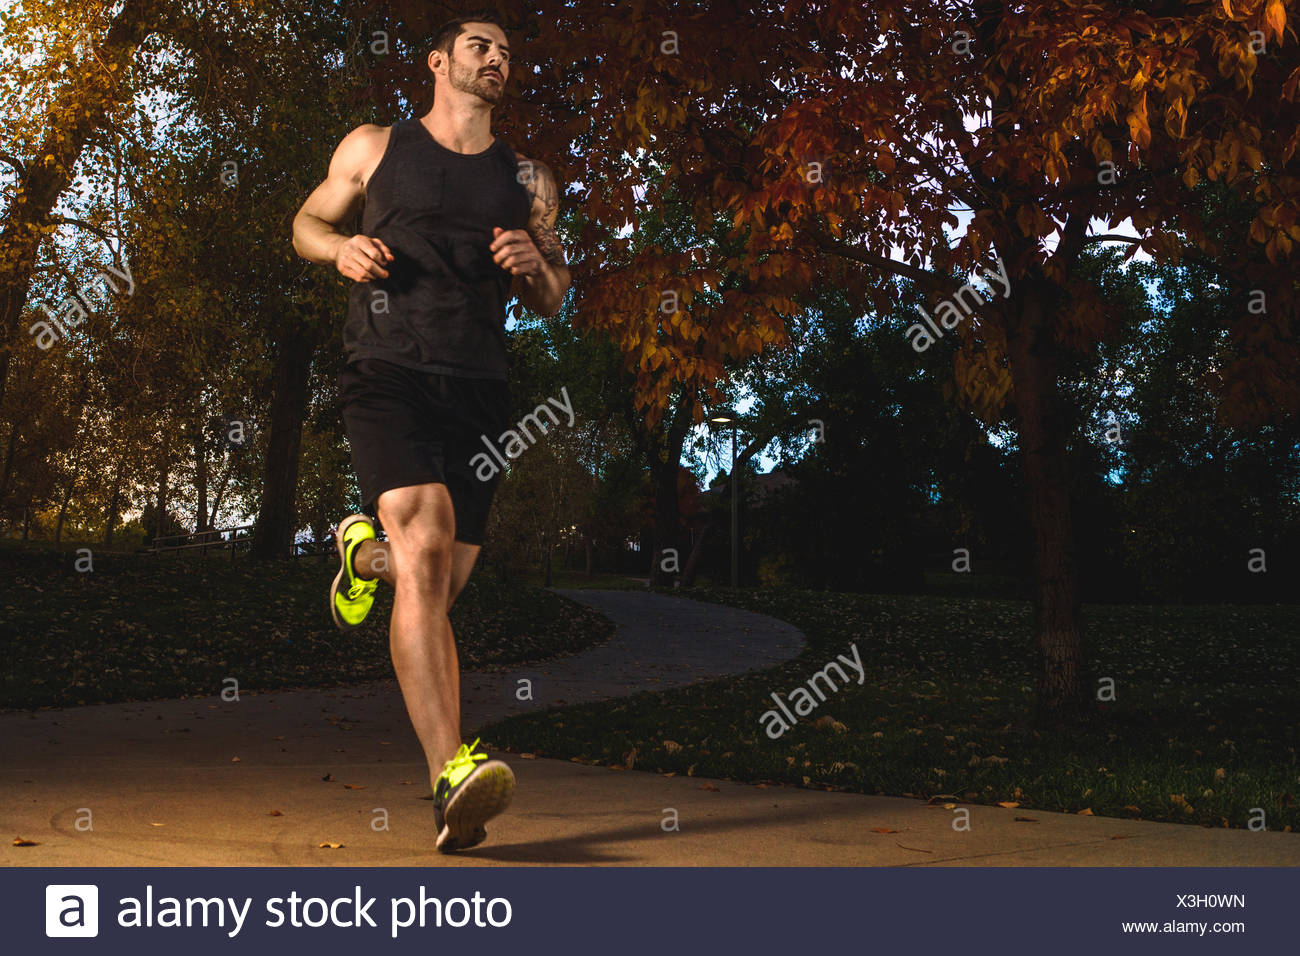 USA, Colorado, Broomfield County, Broomfield, Male athlete jogging - Stock Image